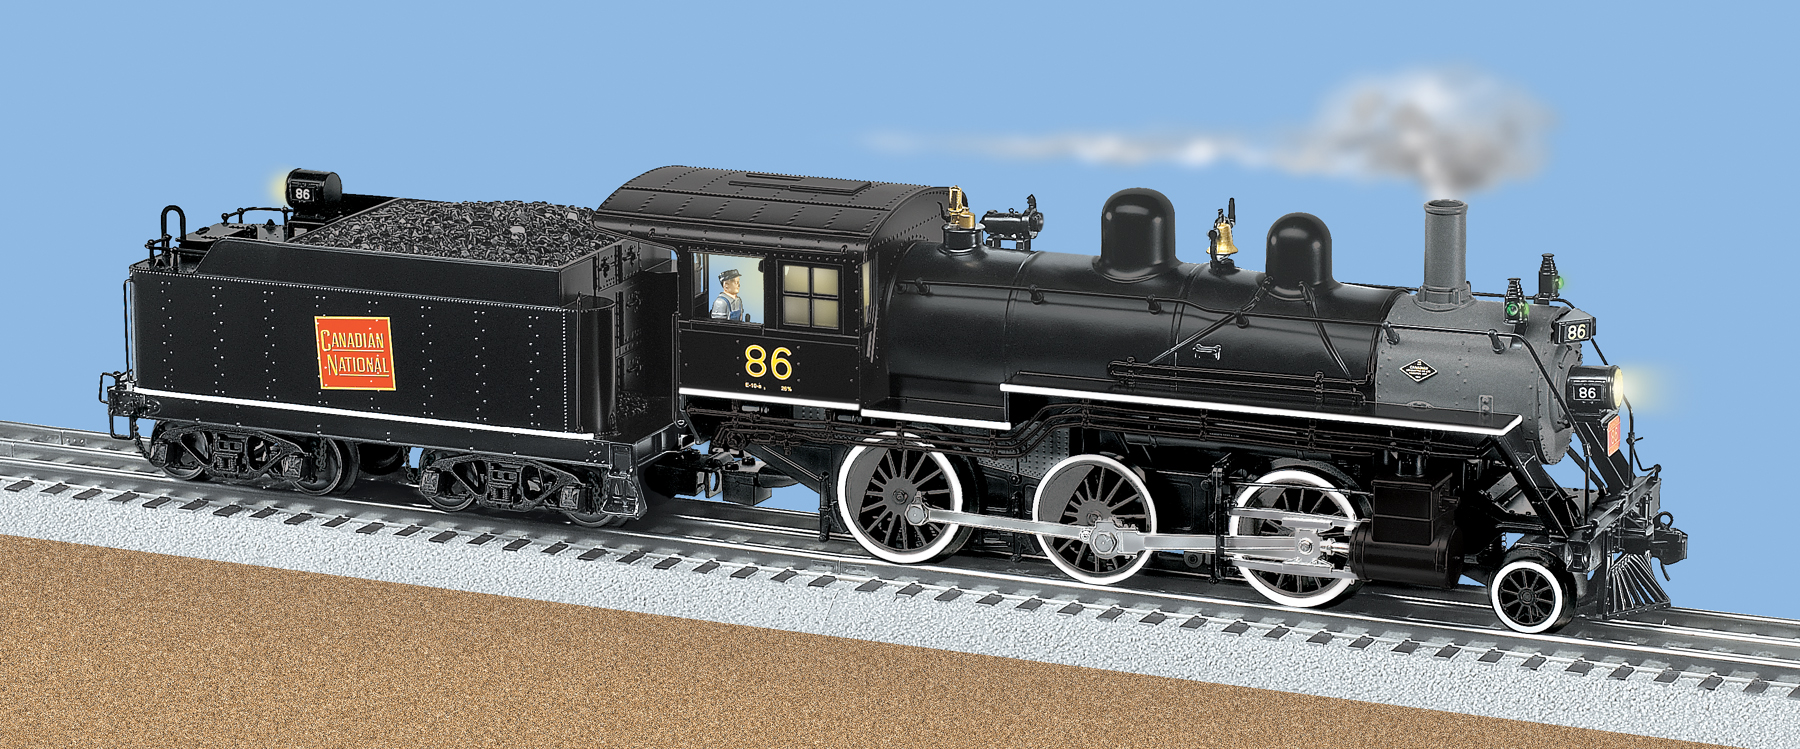 medium resolution of canadian national tmcc scale 2 6 0 mogul steam locomotive 86 ho track wiring lionel trainmaster wiring